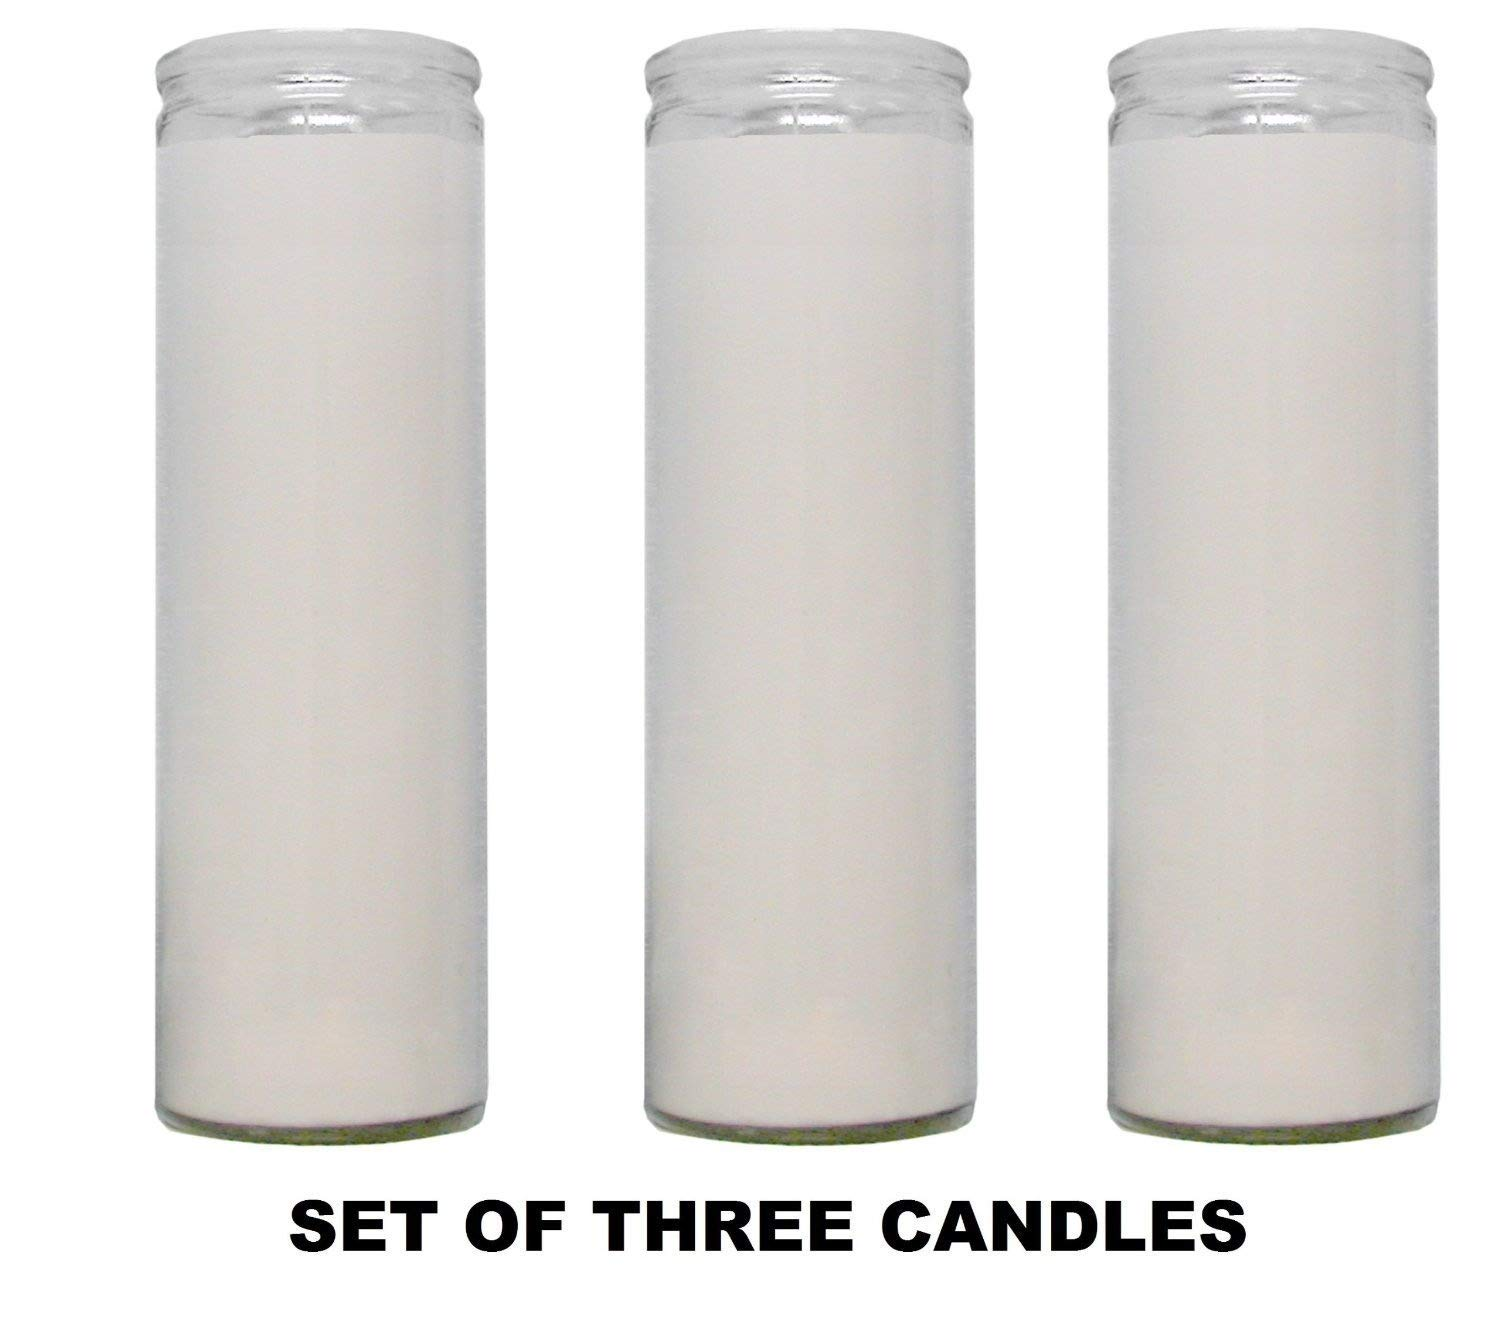 White Paraffin Wax Candles Clear Glass 5-7 Days Candles (Pack of 3)